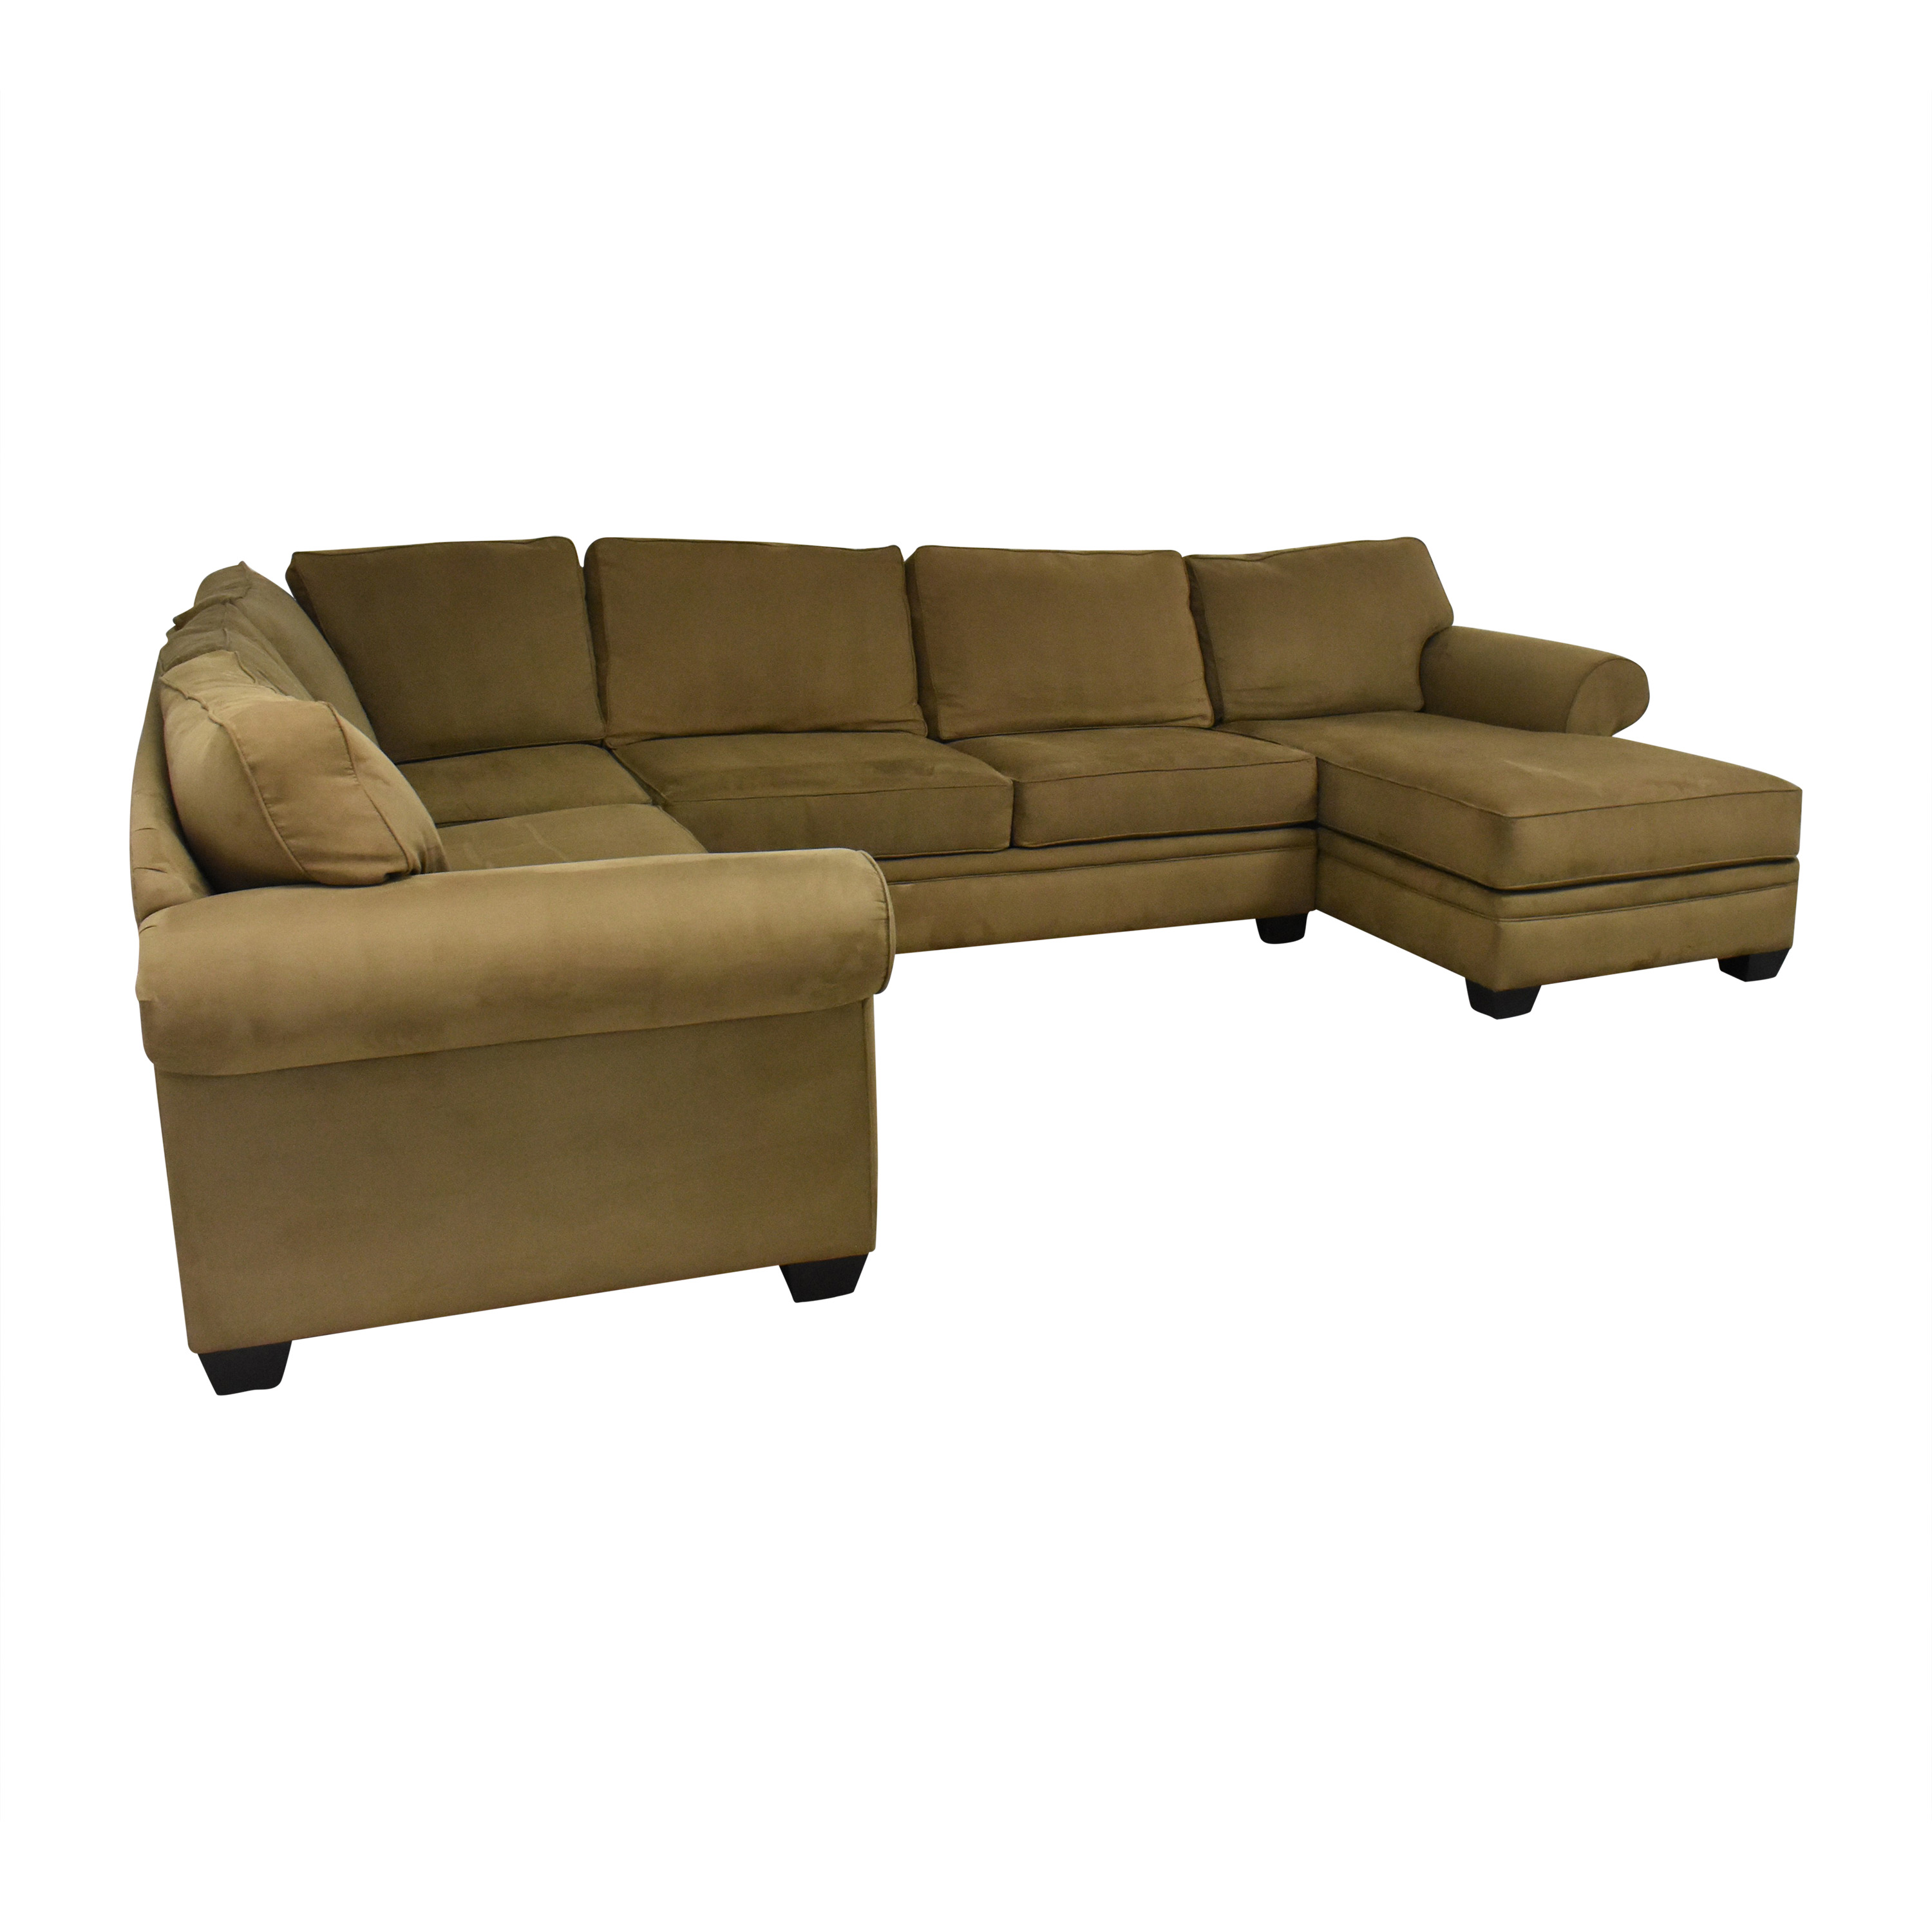 Macy's Macy's Corner Sectional Sofa with Chaise Sofas